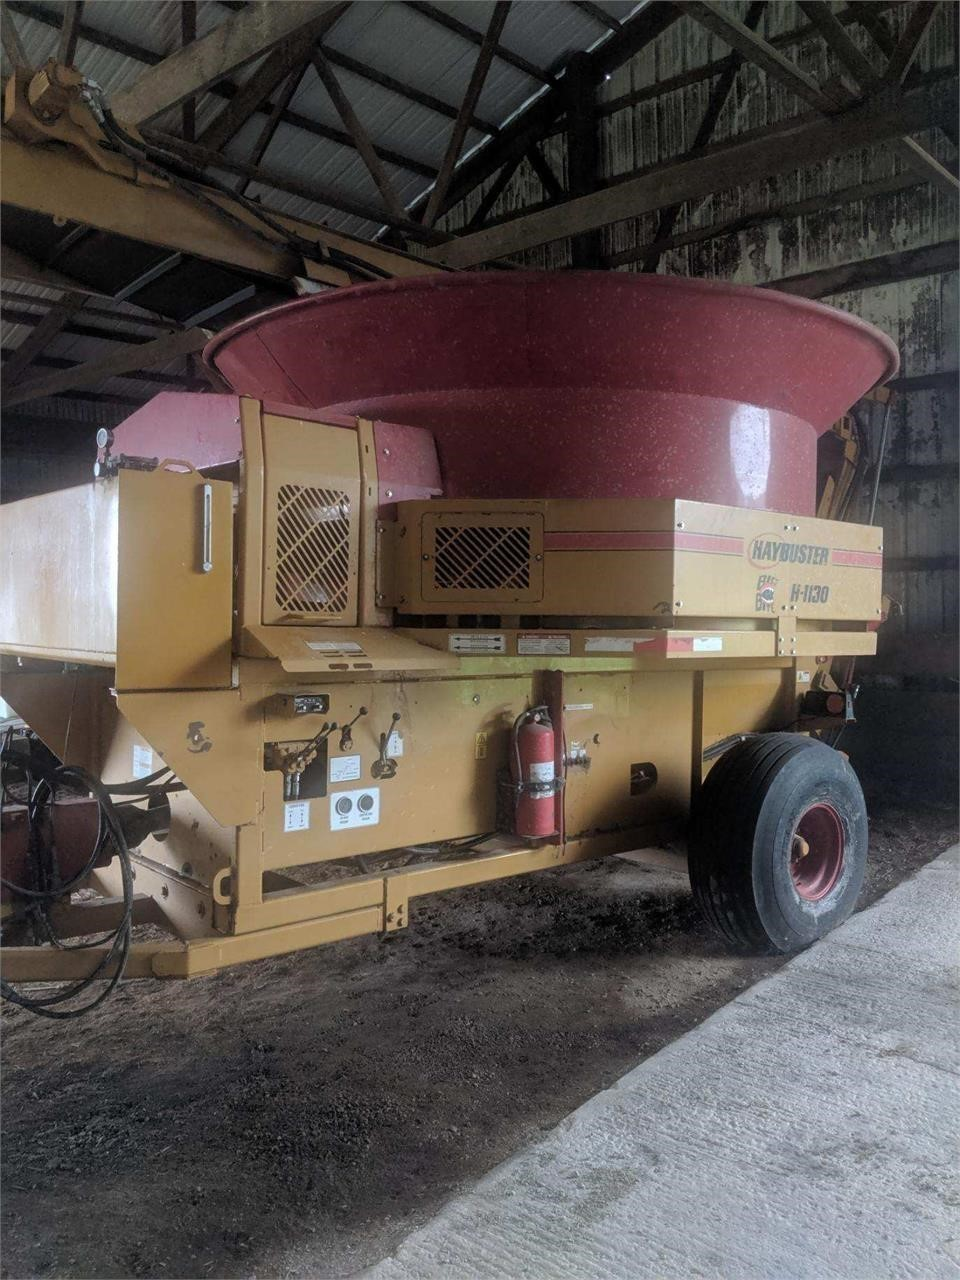 2014 Haybuster H1130 Grinders and Mixer